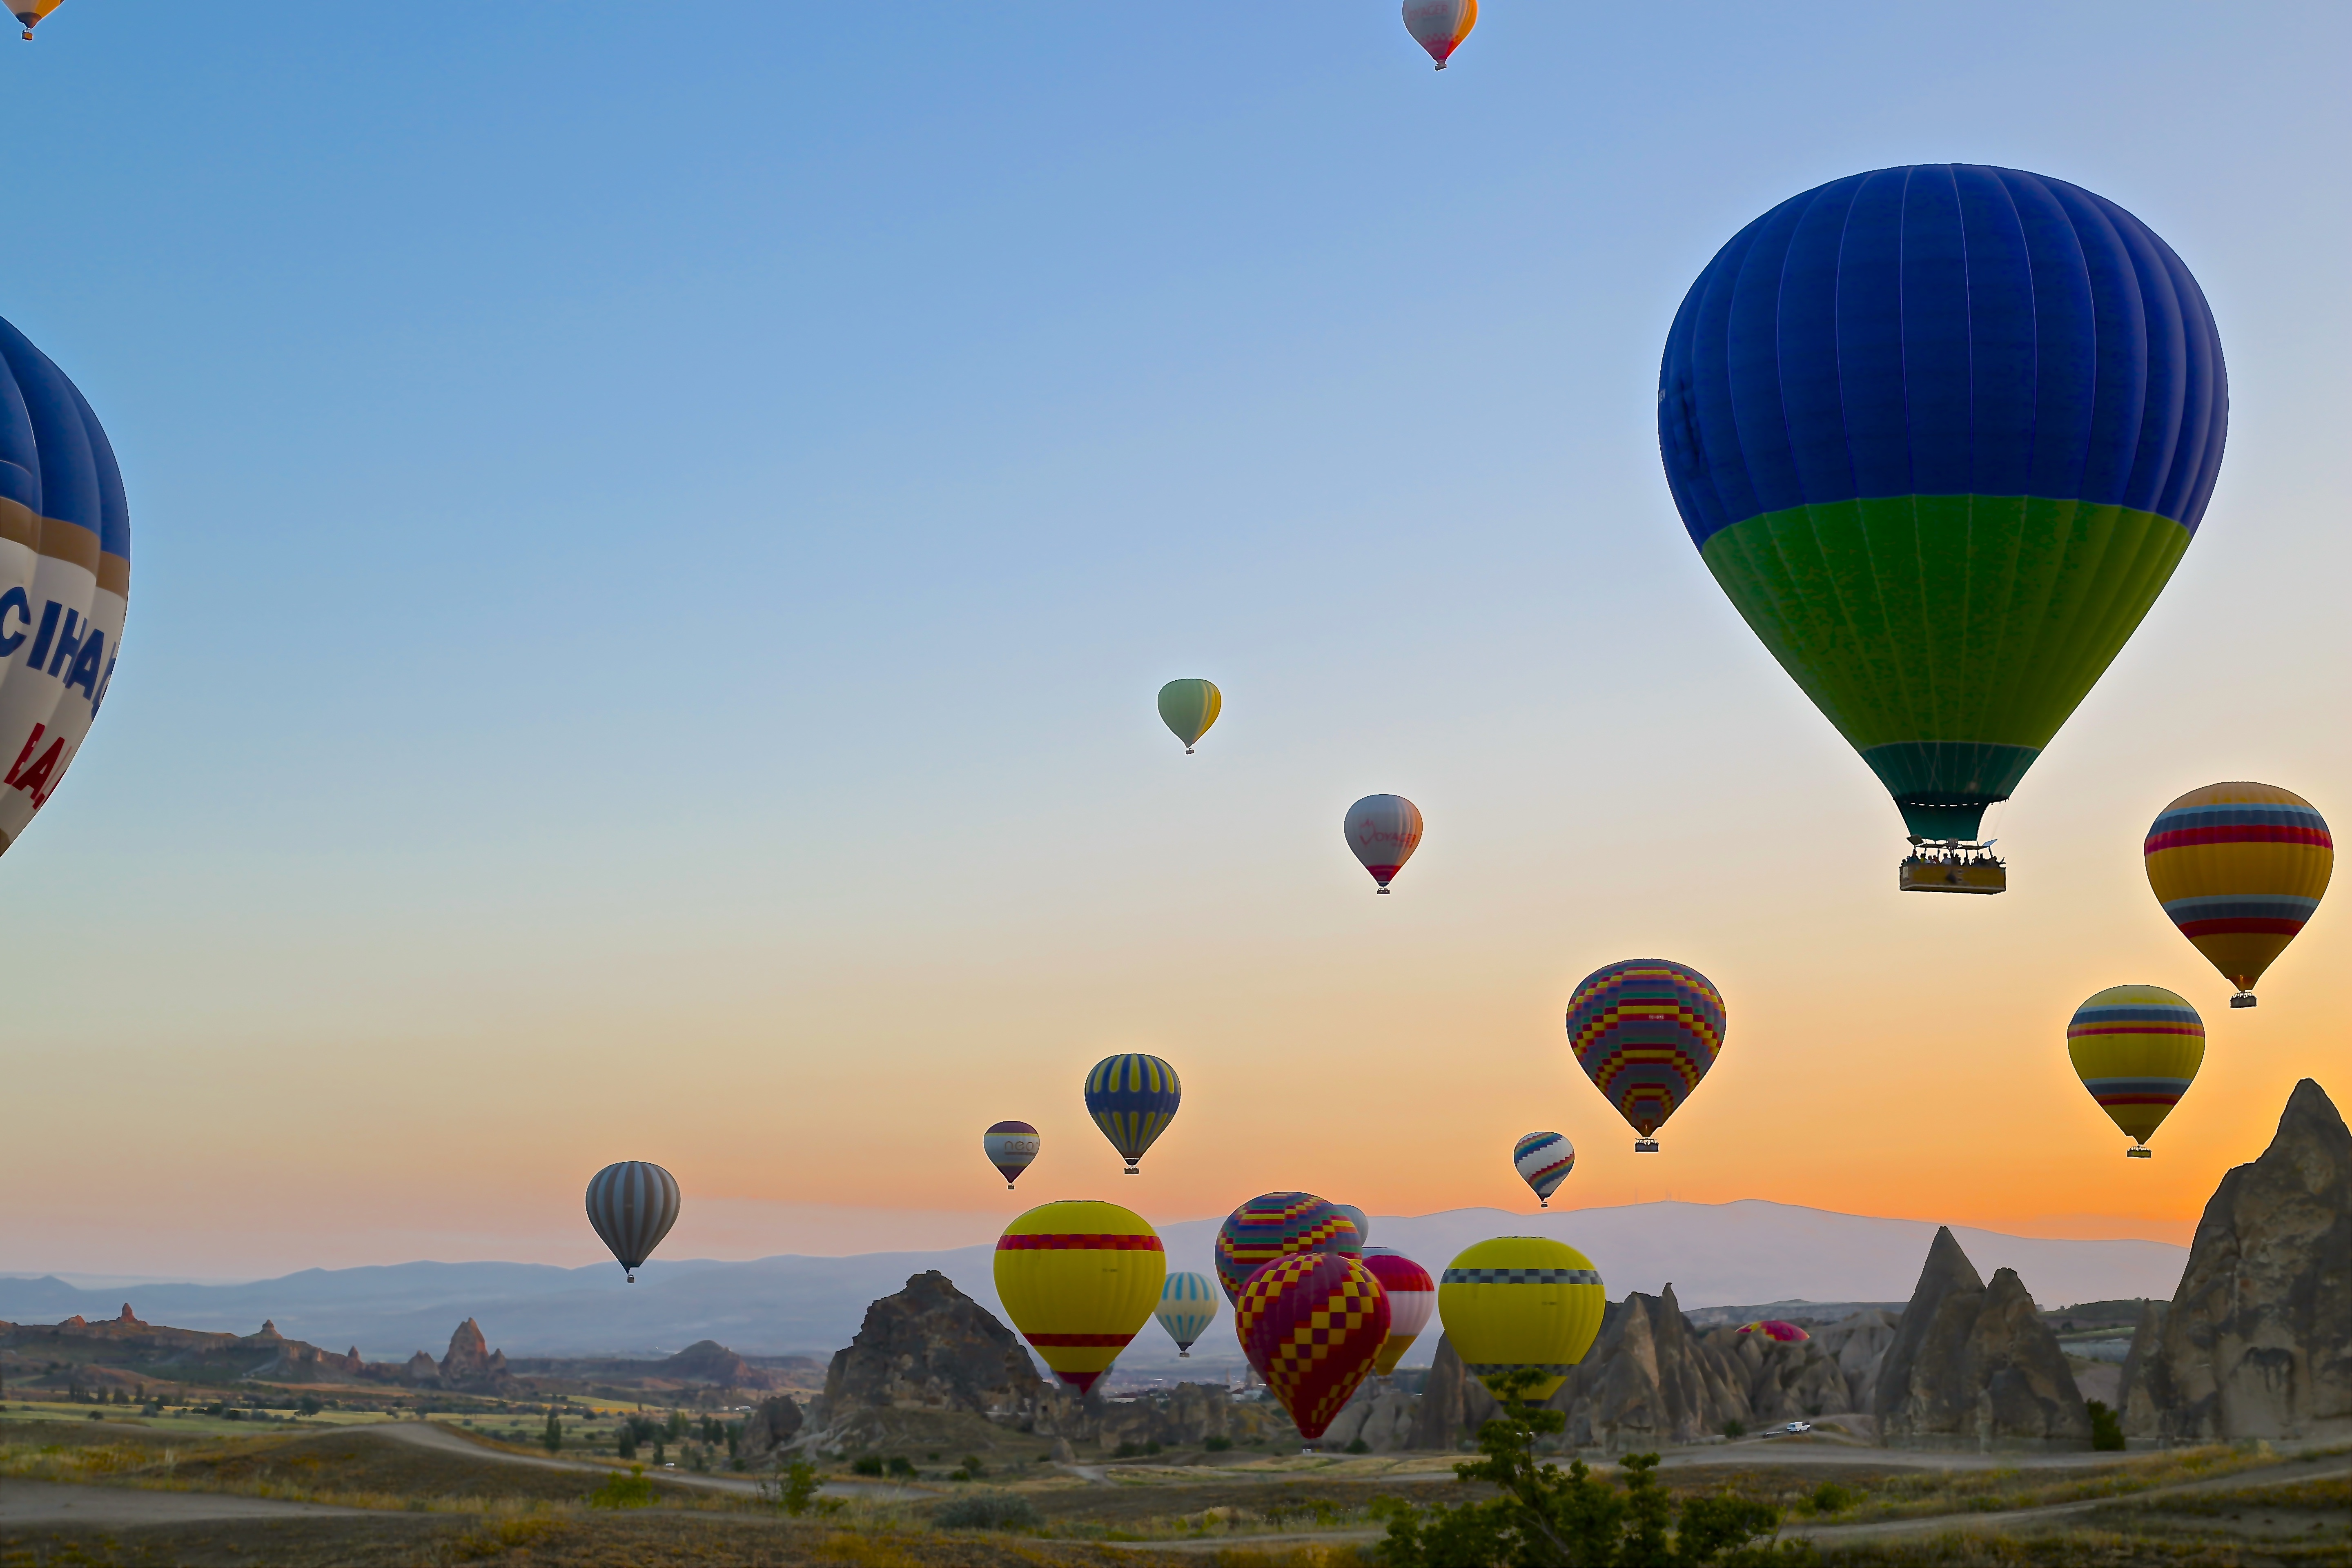 A bunch of hot balloons floating at sunset by Daniela Cuevas on Unsplash